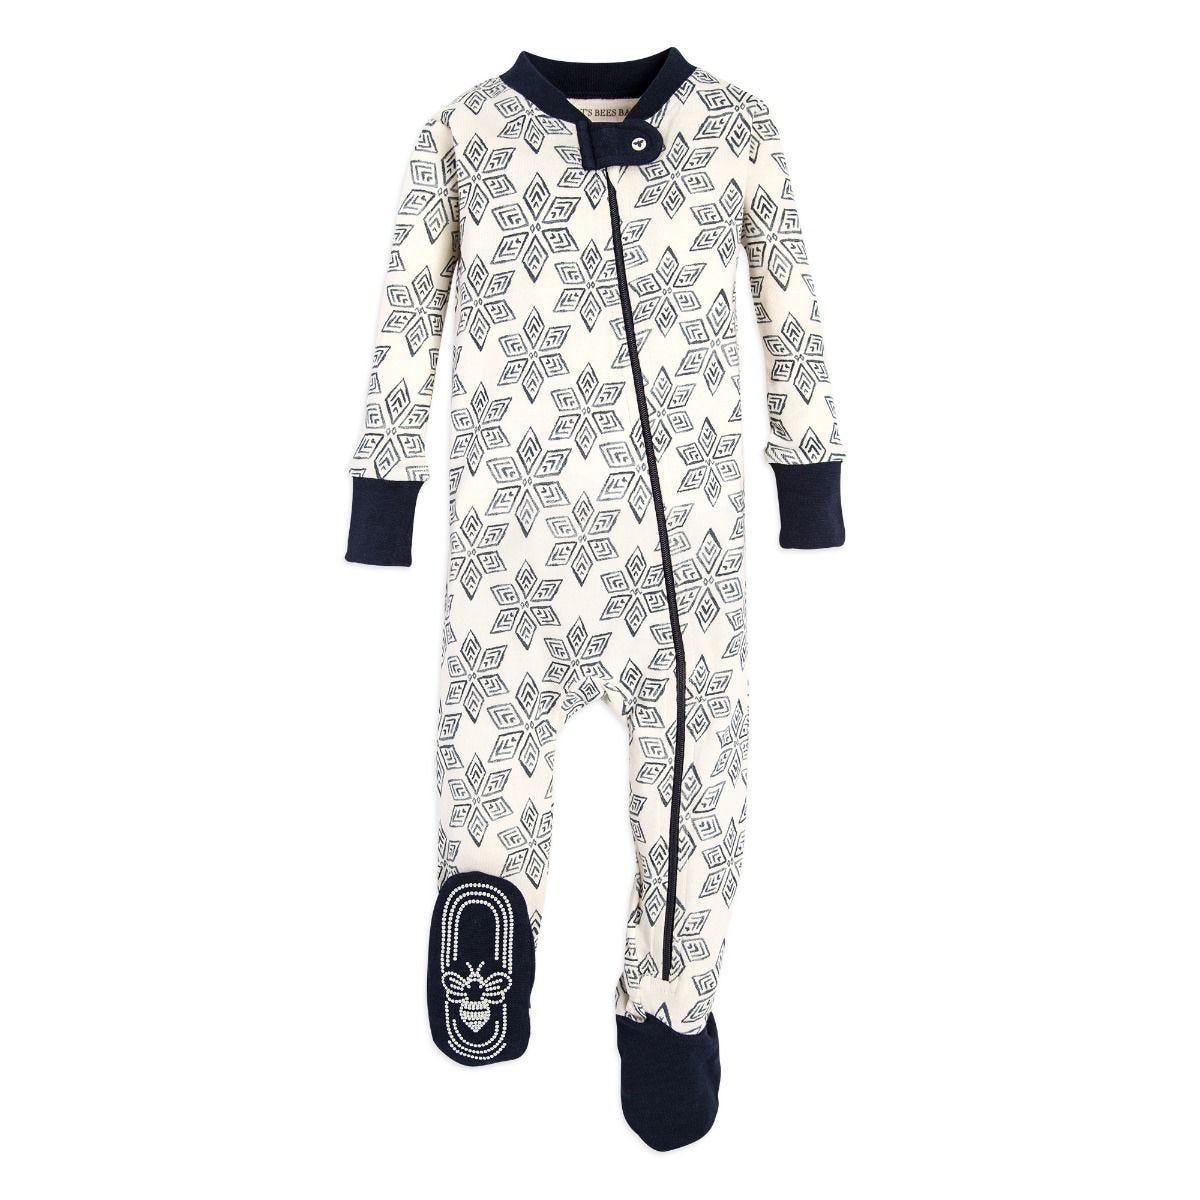 0e45c062e271 Arctic Snowflake Organic Baby Zip Up Footed Pajamas